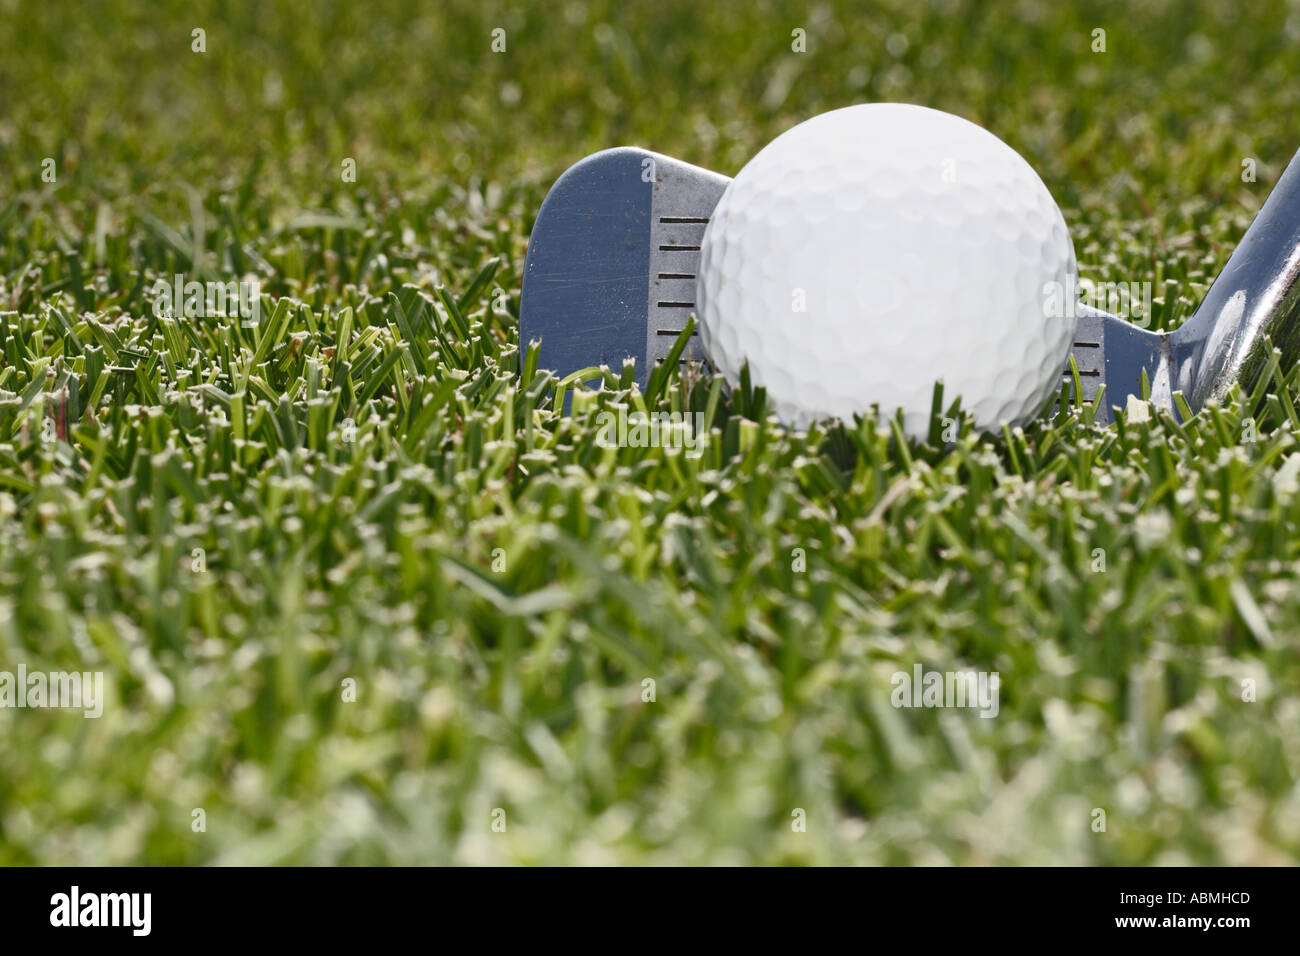 Close Up Of Golf Club With Ball On Fairway - Stock Image